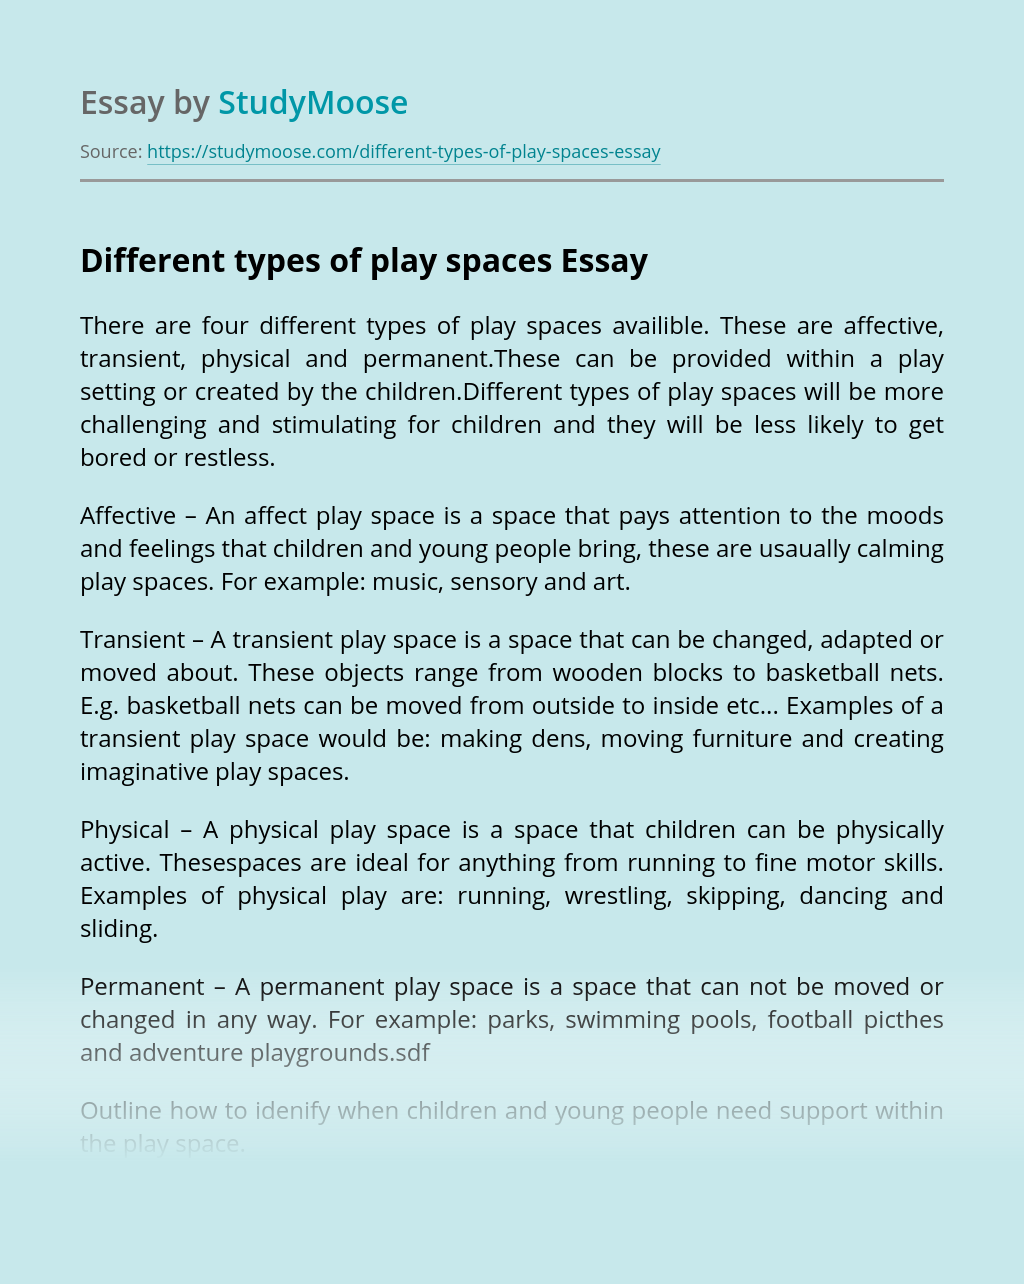 Different types of play spaces